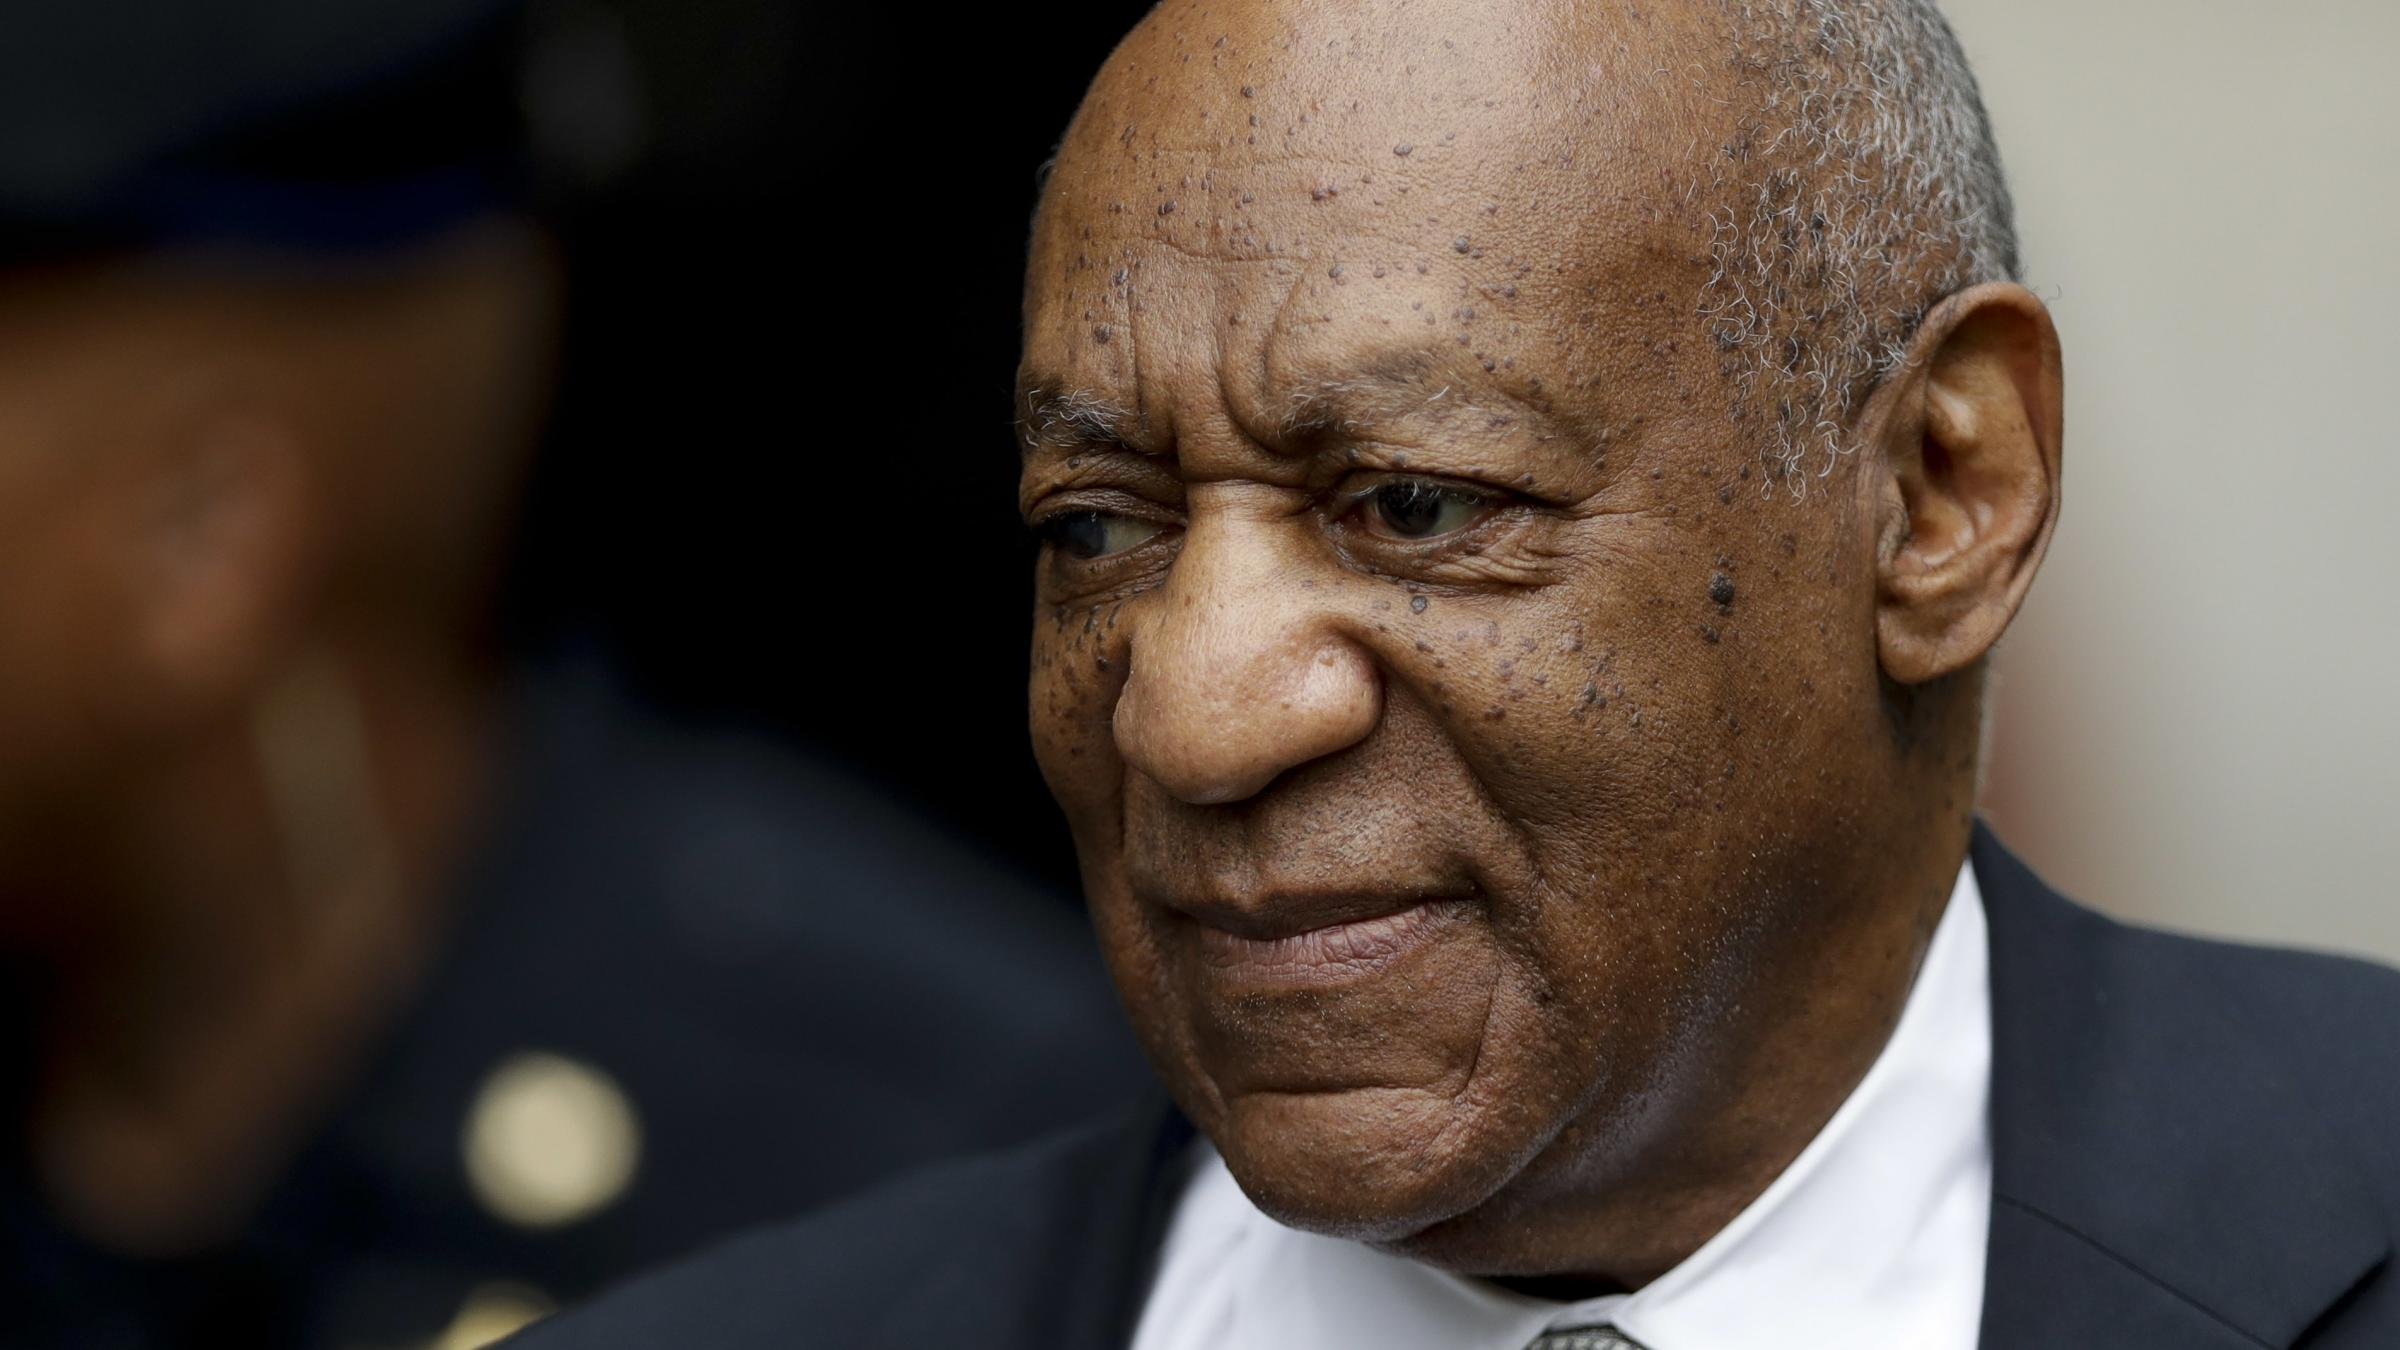 Gloria Allred to Bill Cosby: 'Round 2 is coming'